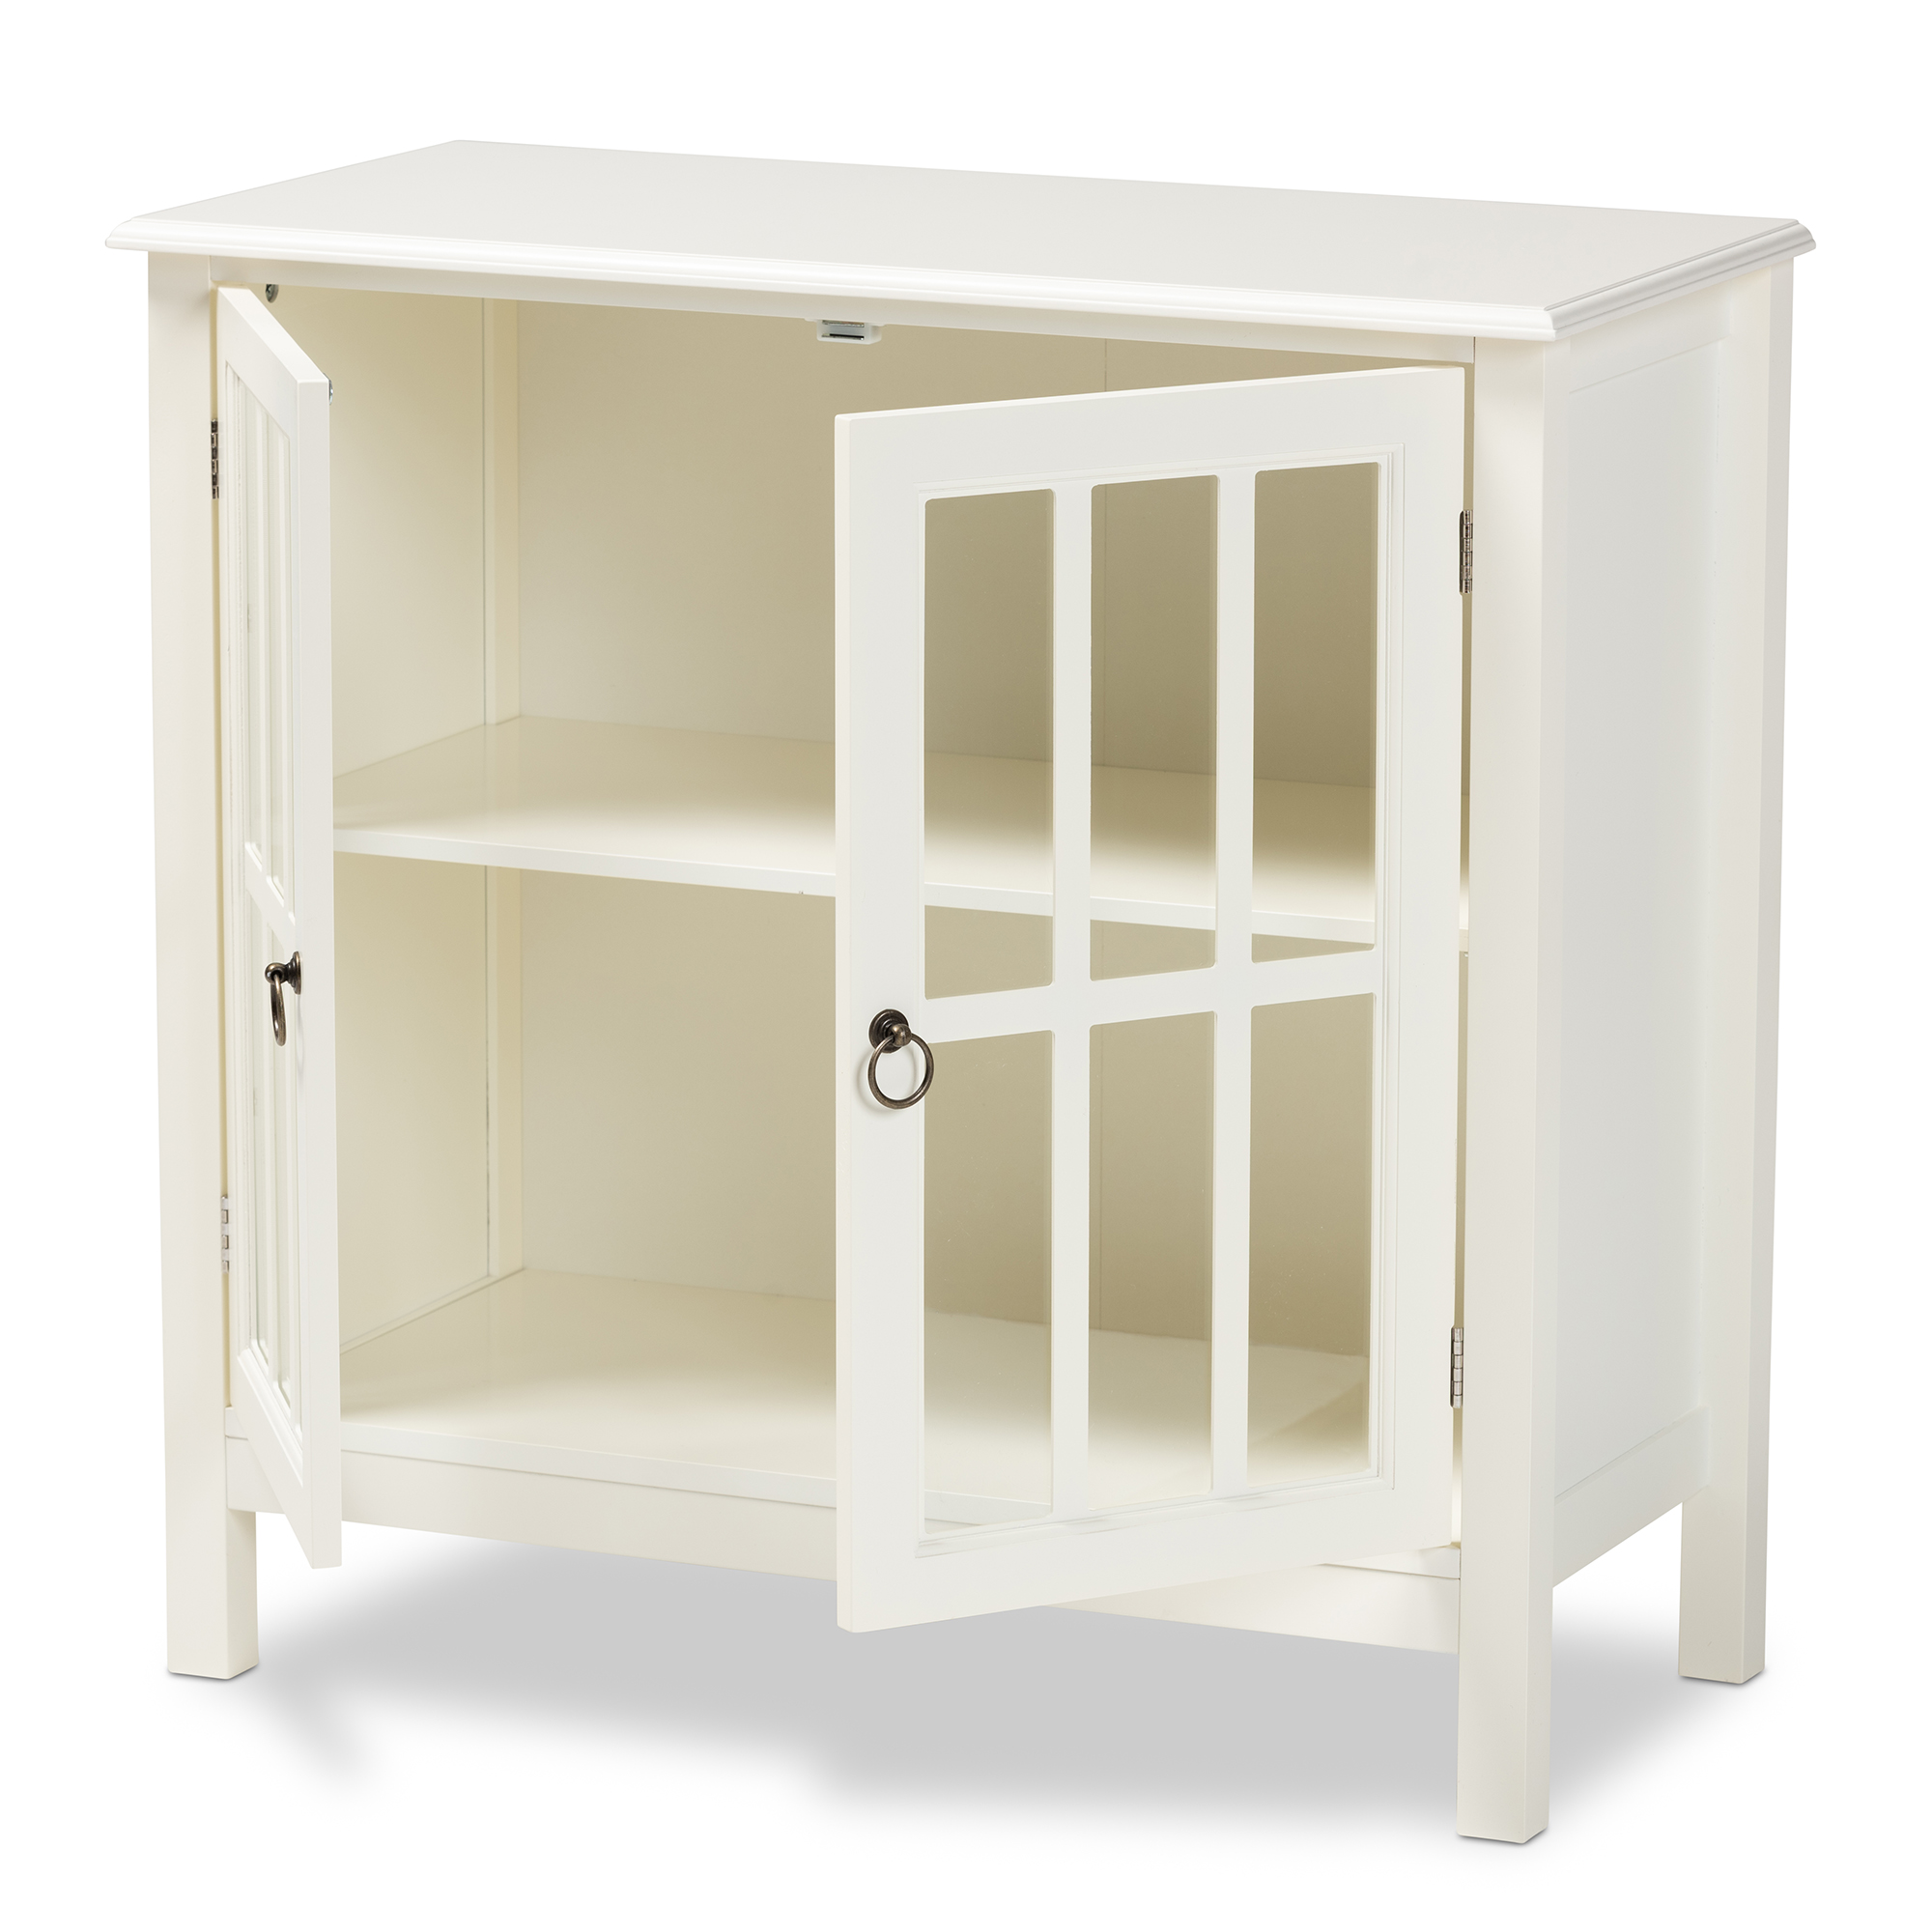 Baxton Studio Kendall Classic and Traditional White Finished Wood and Glass Kitchen Storage Cabinet